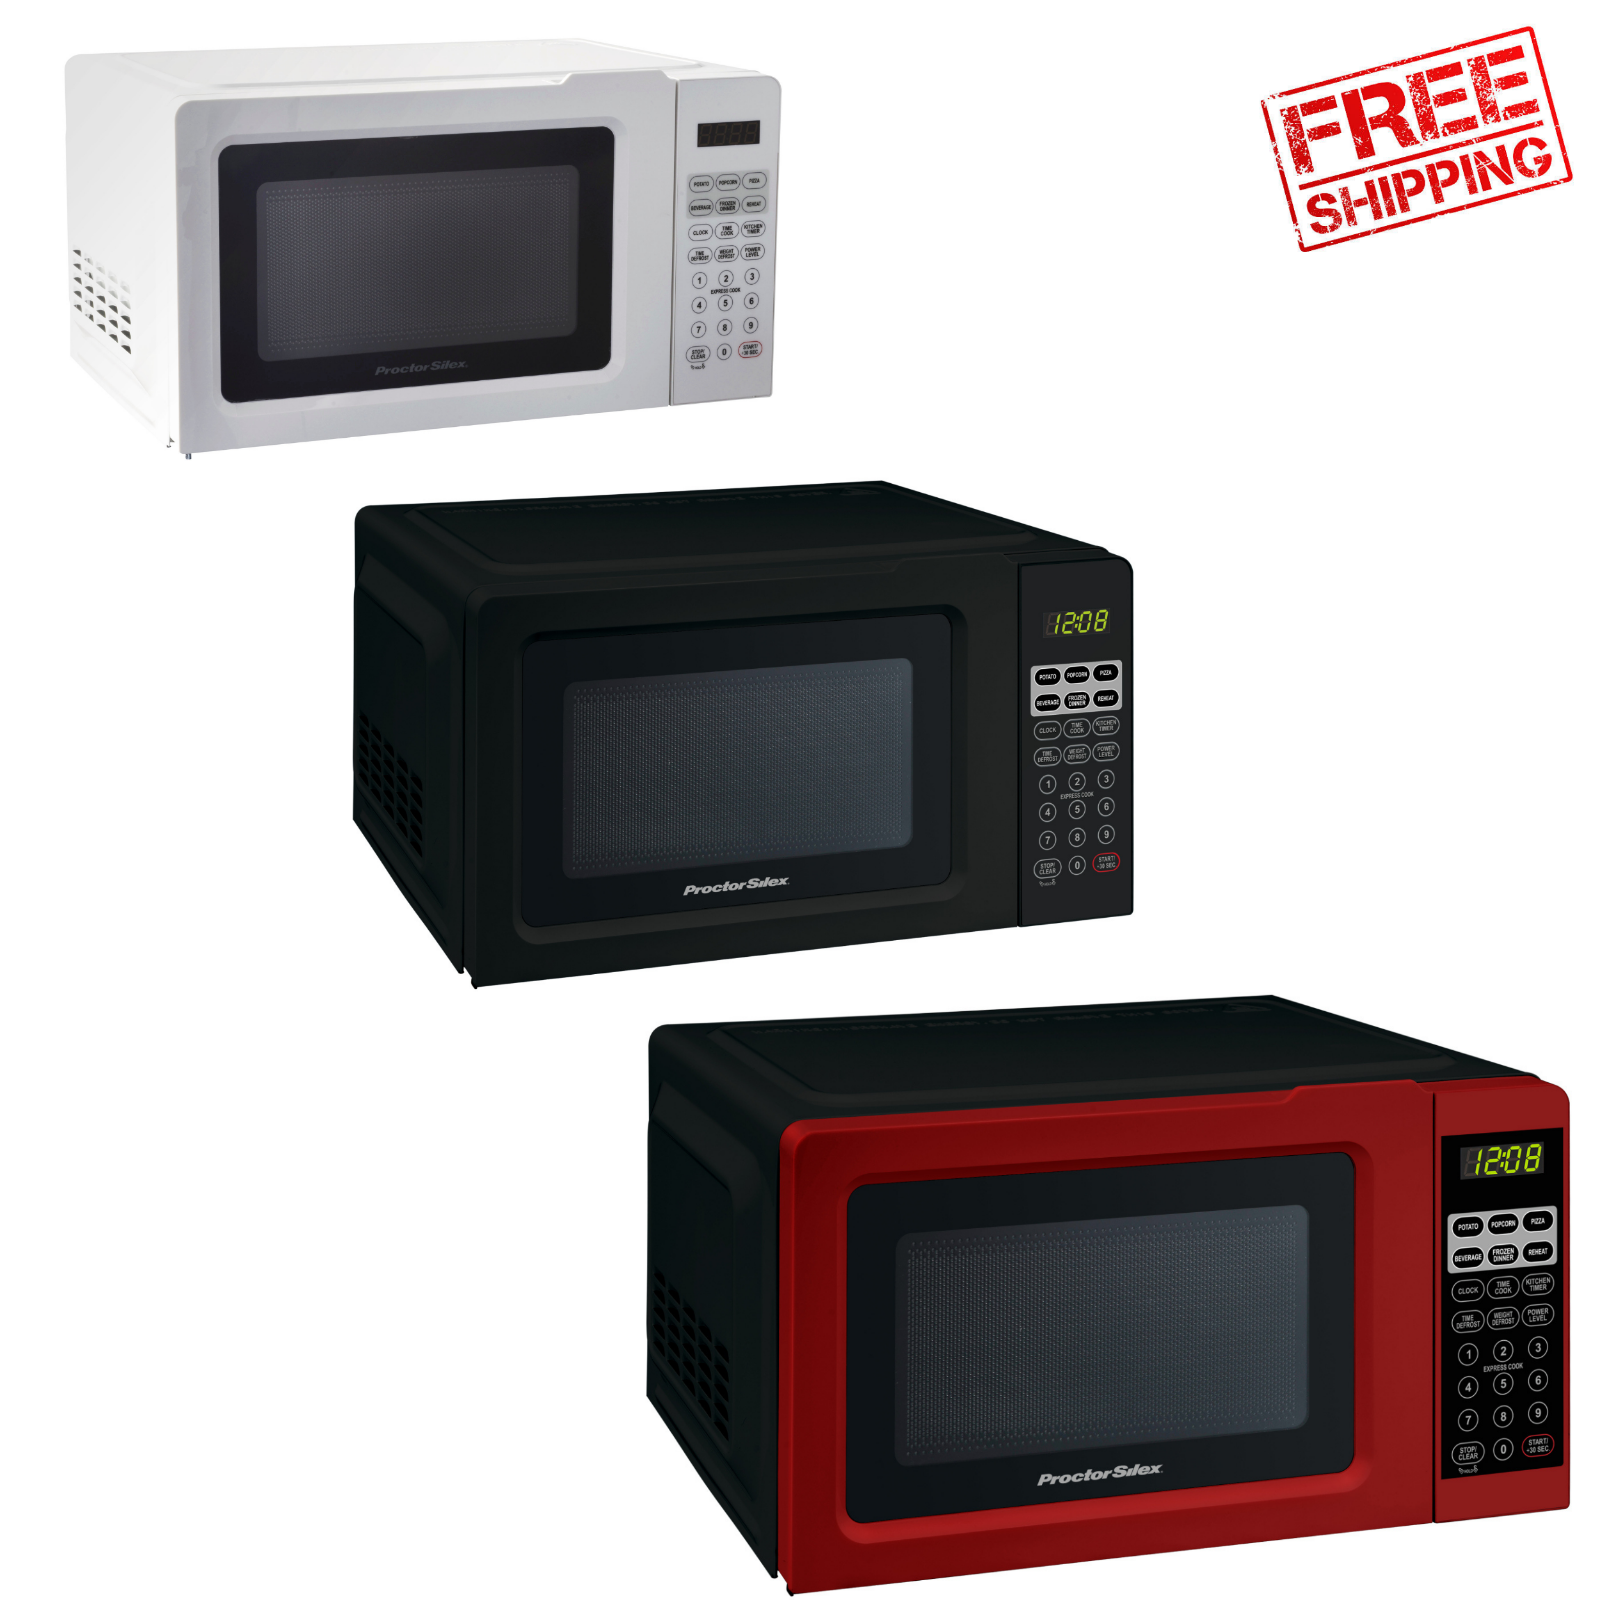 Digital Countertop Microwave Oven 0.7 cu ft 700W Kitchen Home Office Appliance